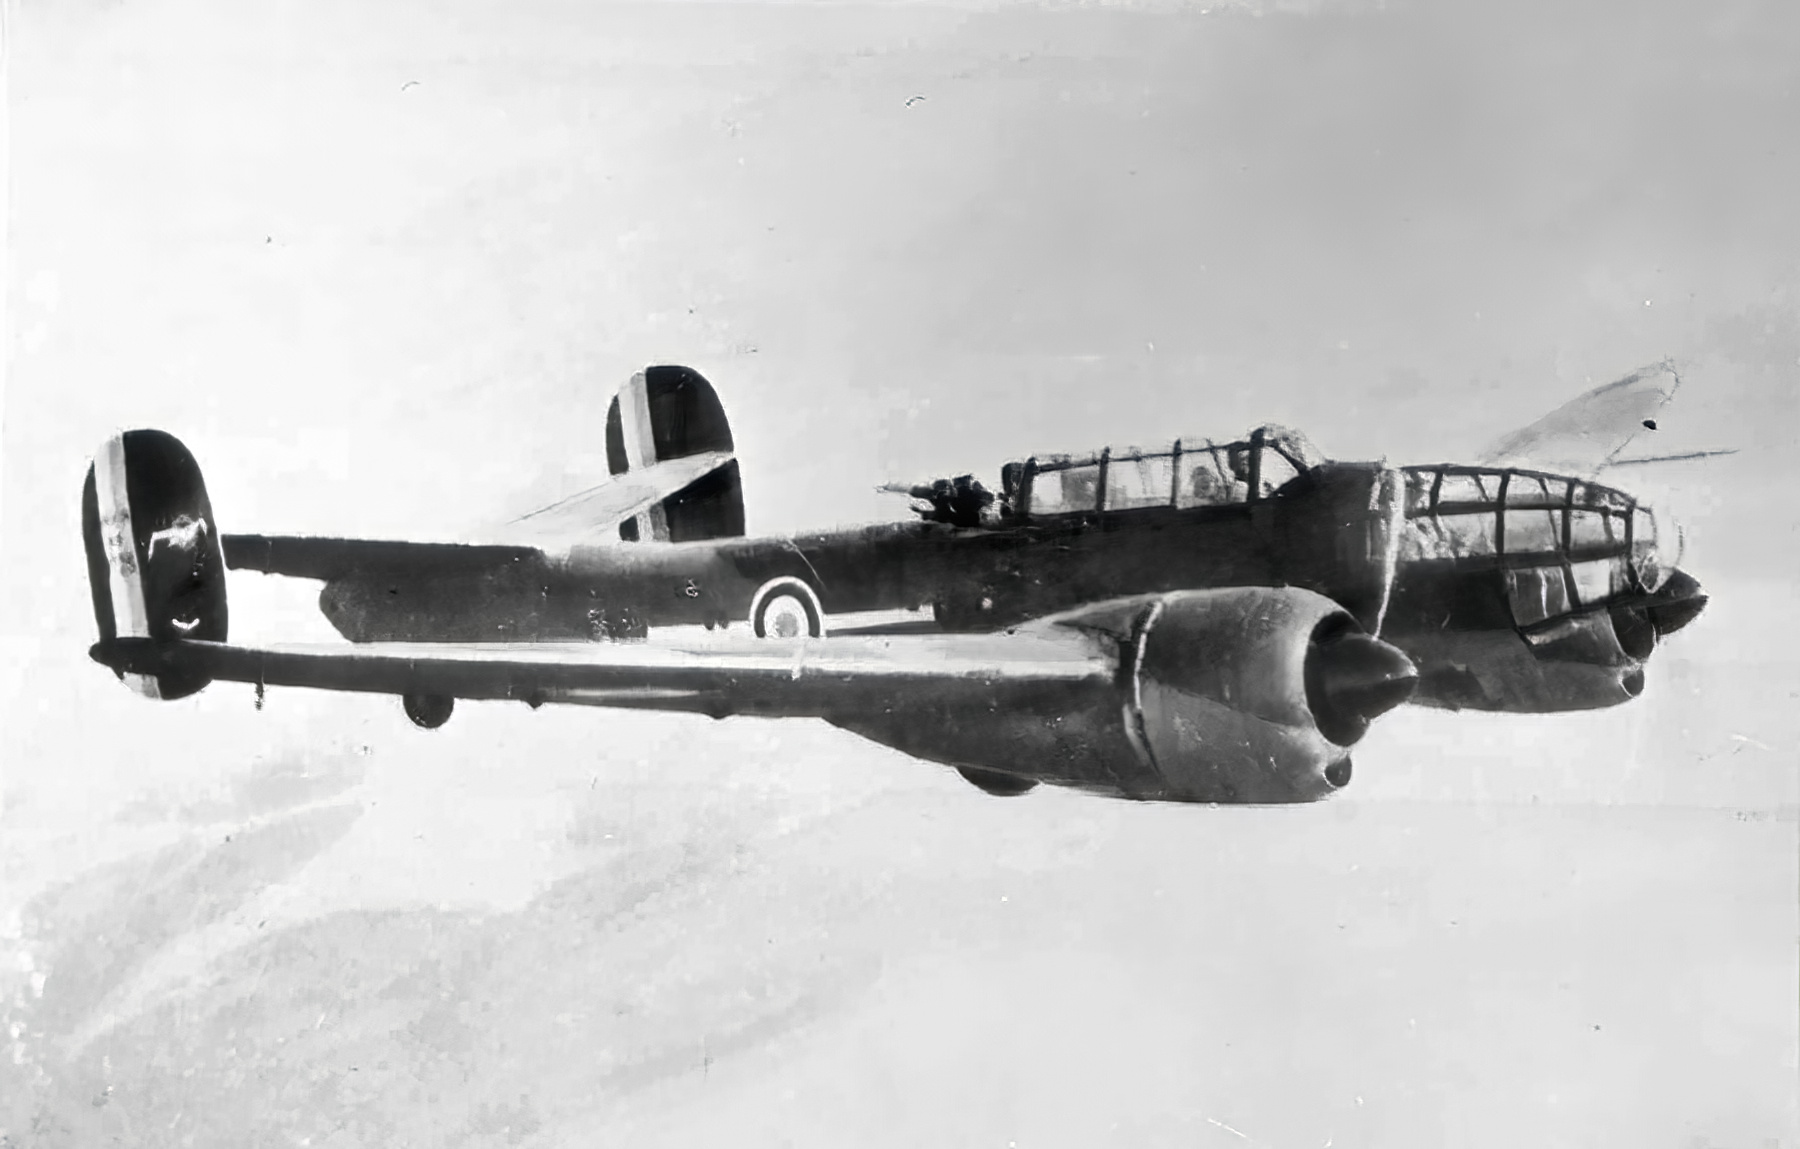 French Airforce Bloch MB 174 inflight over France 1940 ebay 01